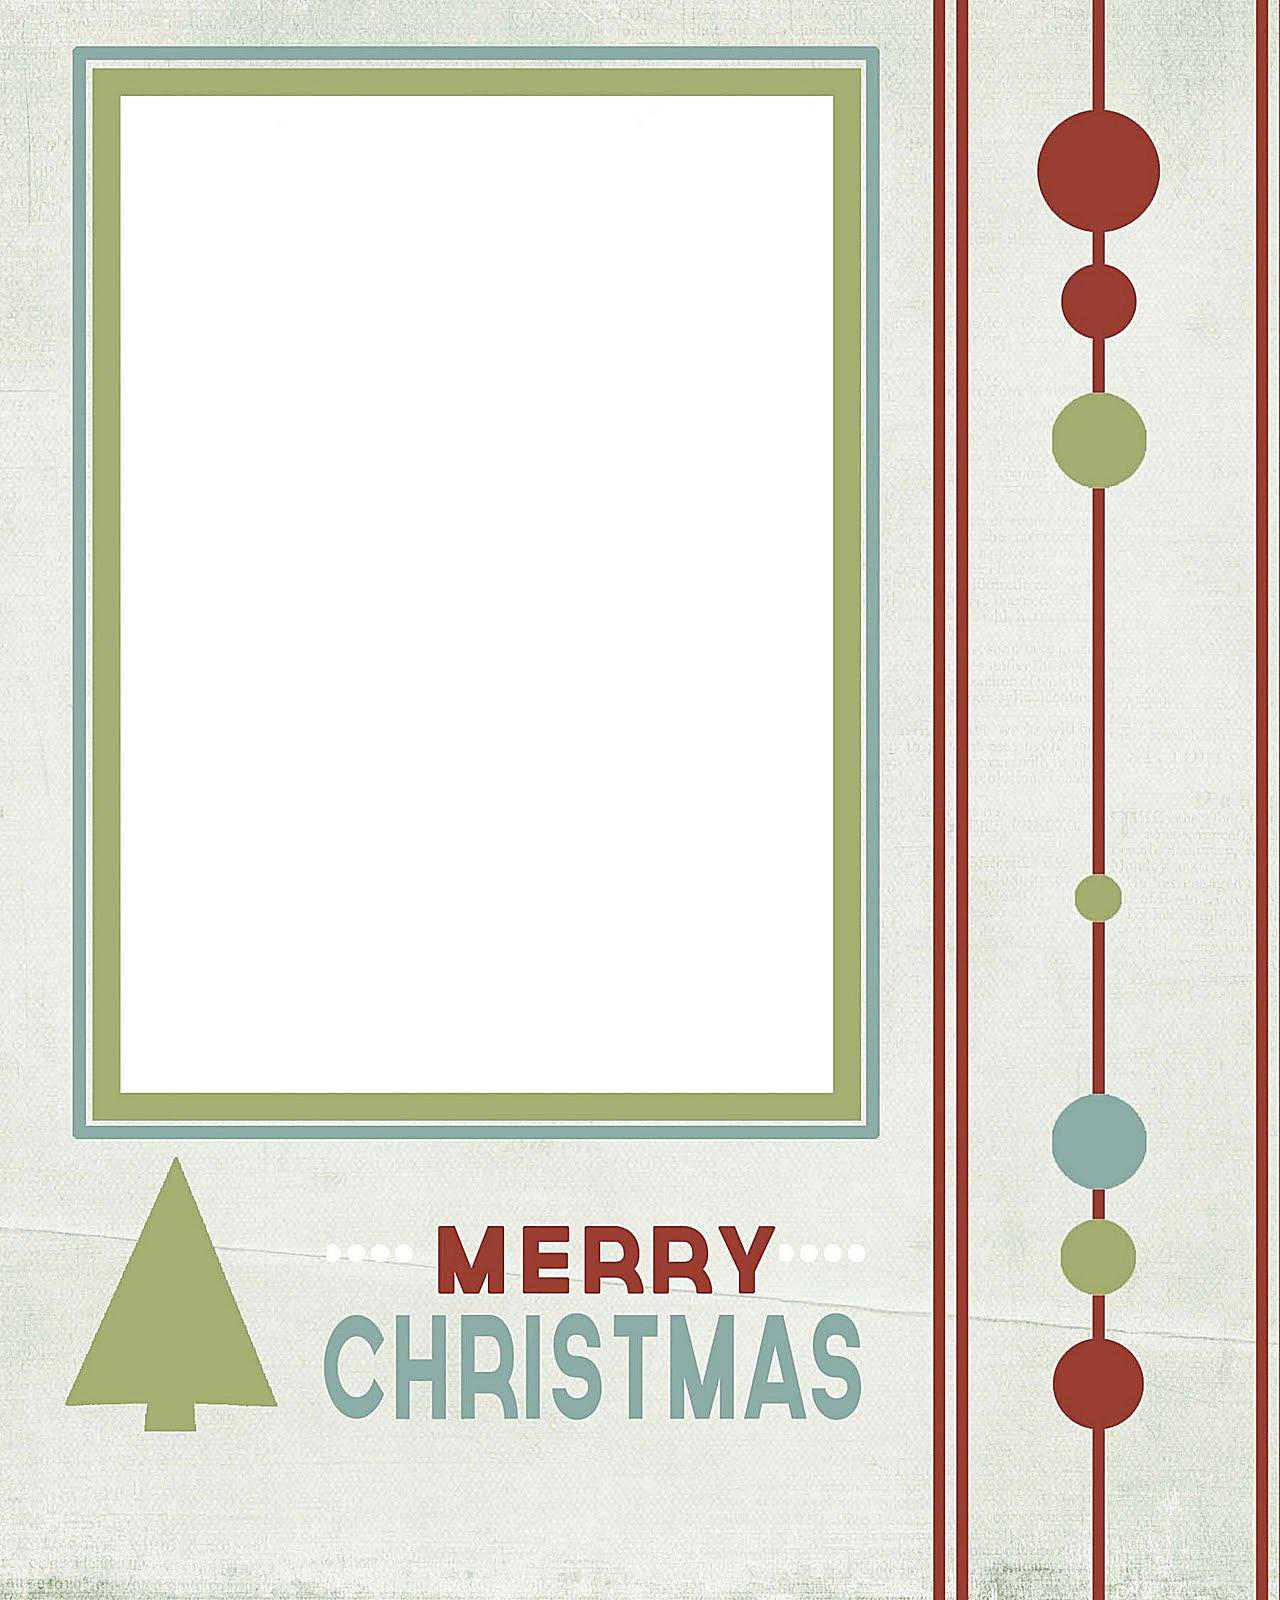 Free Christmas Card Templates For Photo Cards - Card template free: photo insert christmas cards